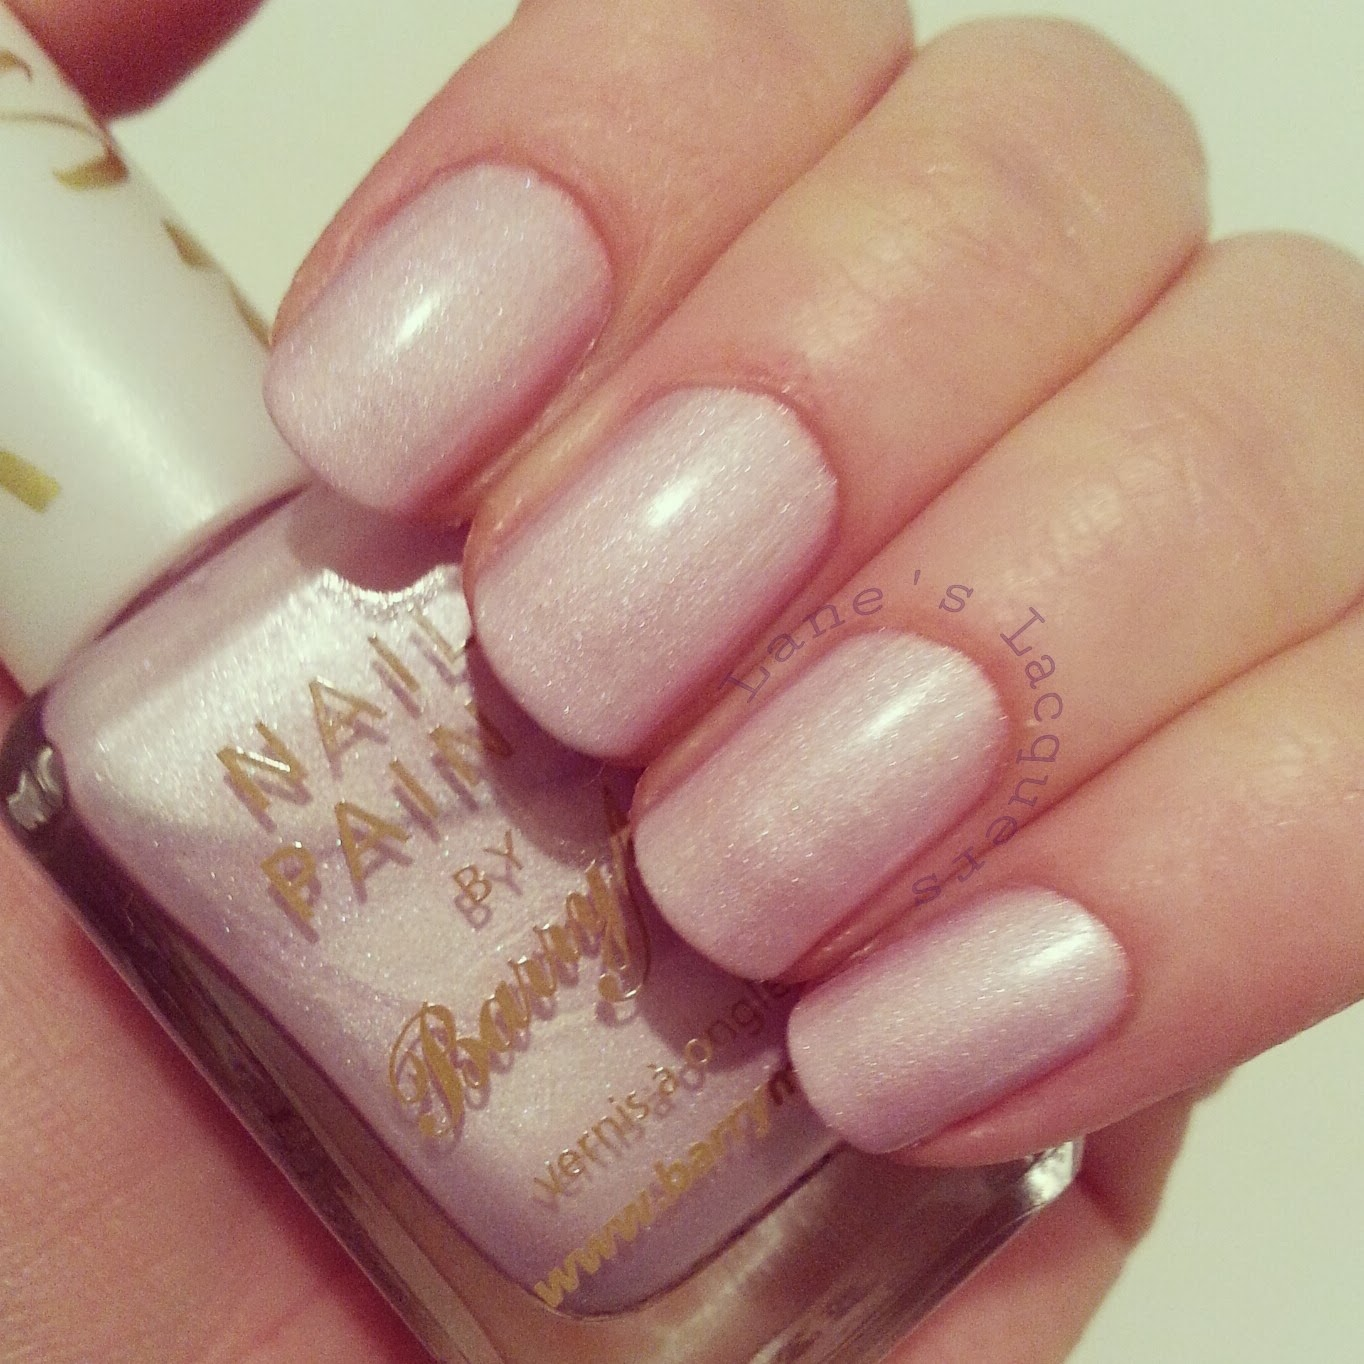 barry-m-silk-heather-swatch-nails